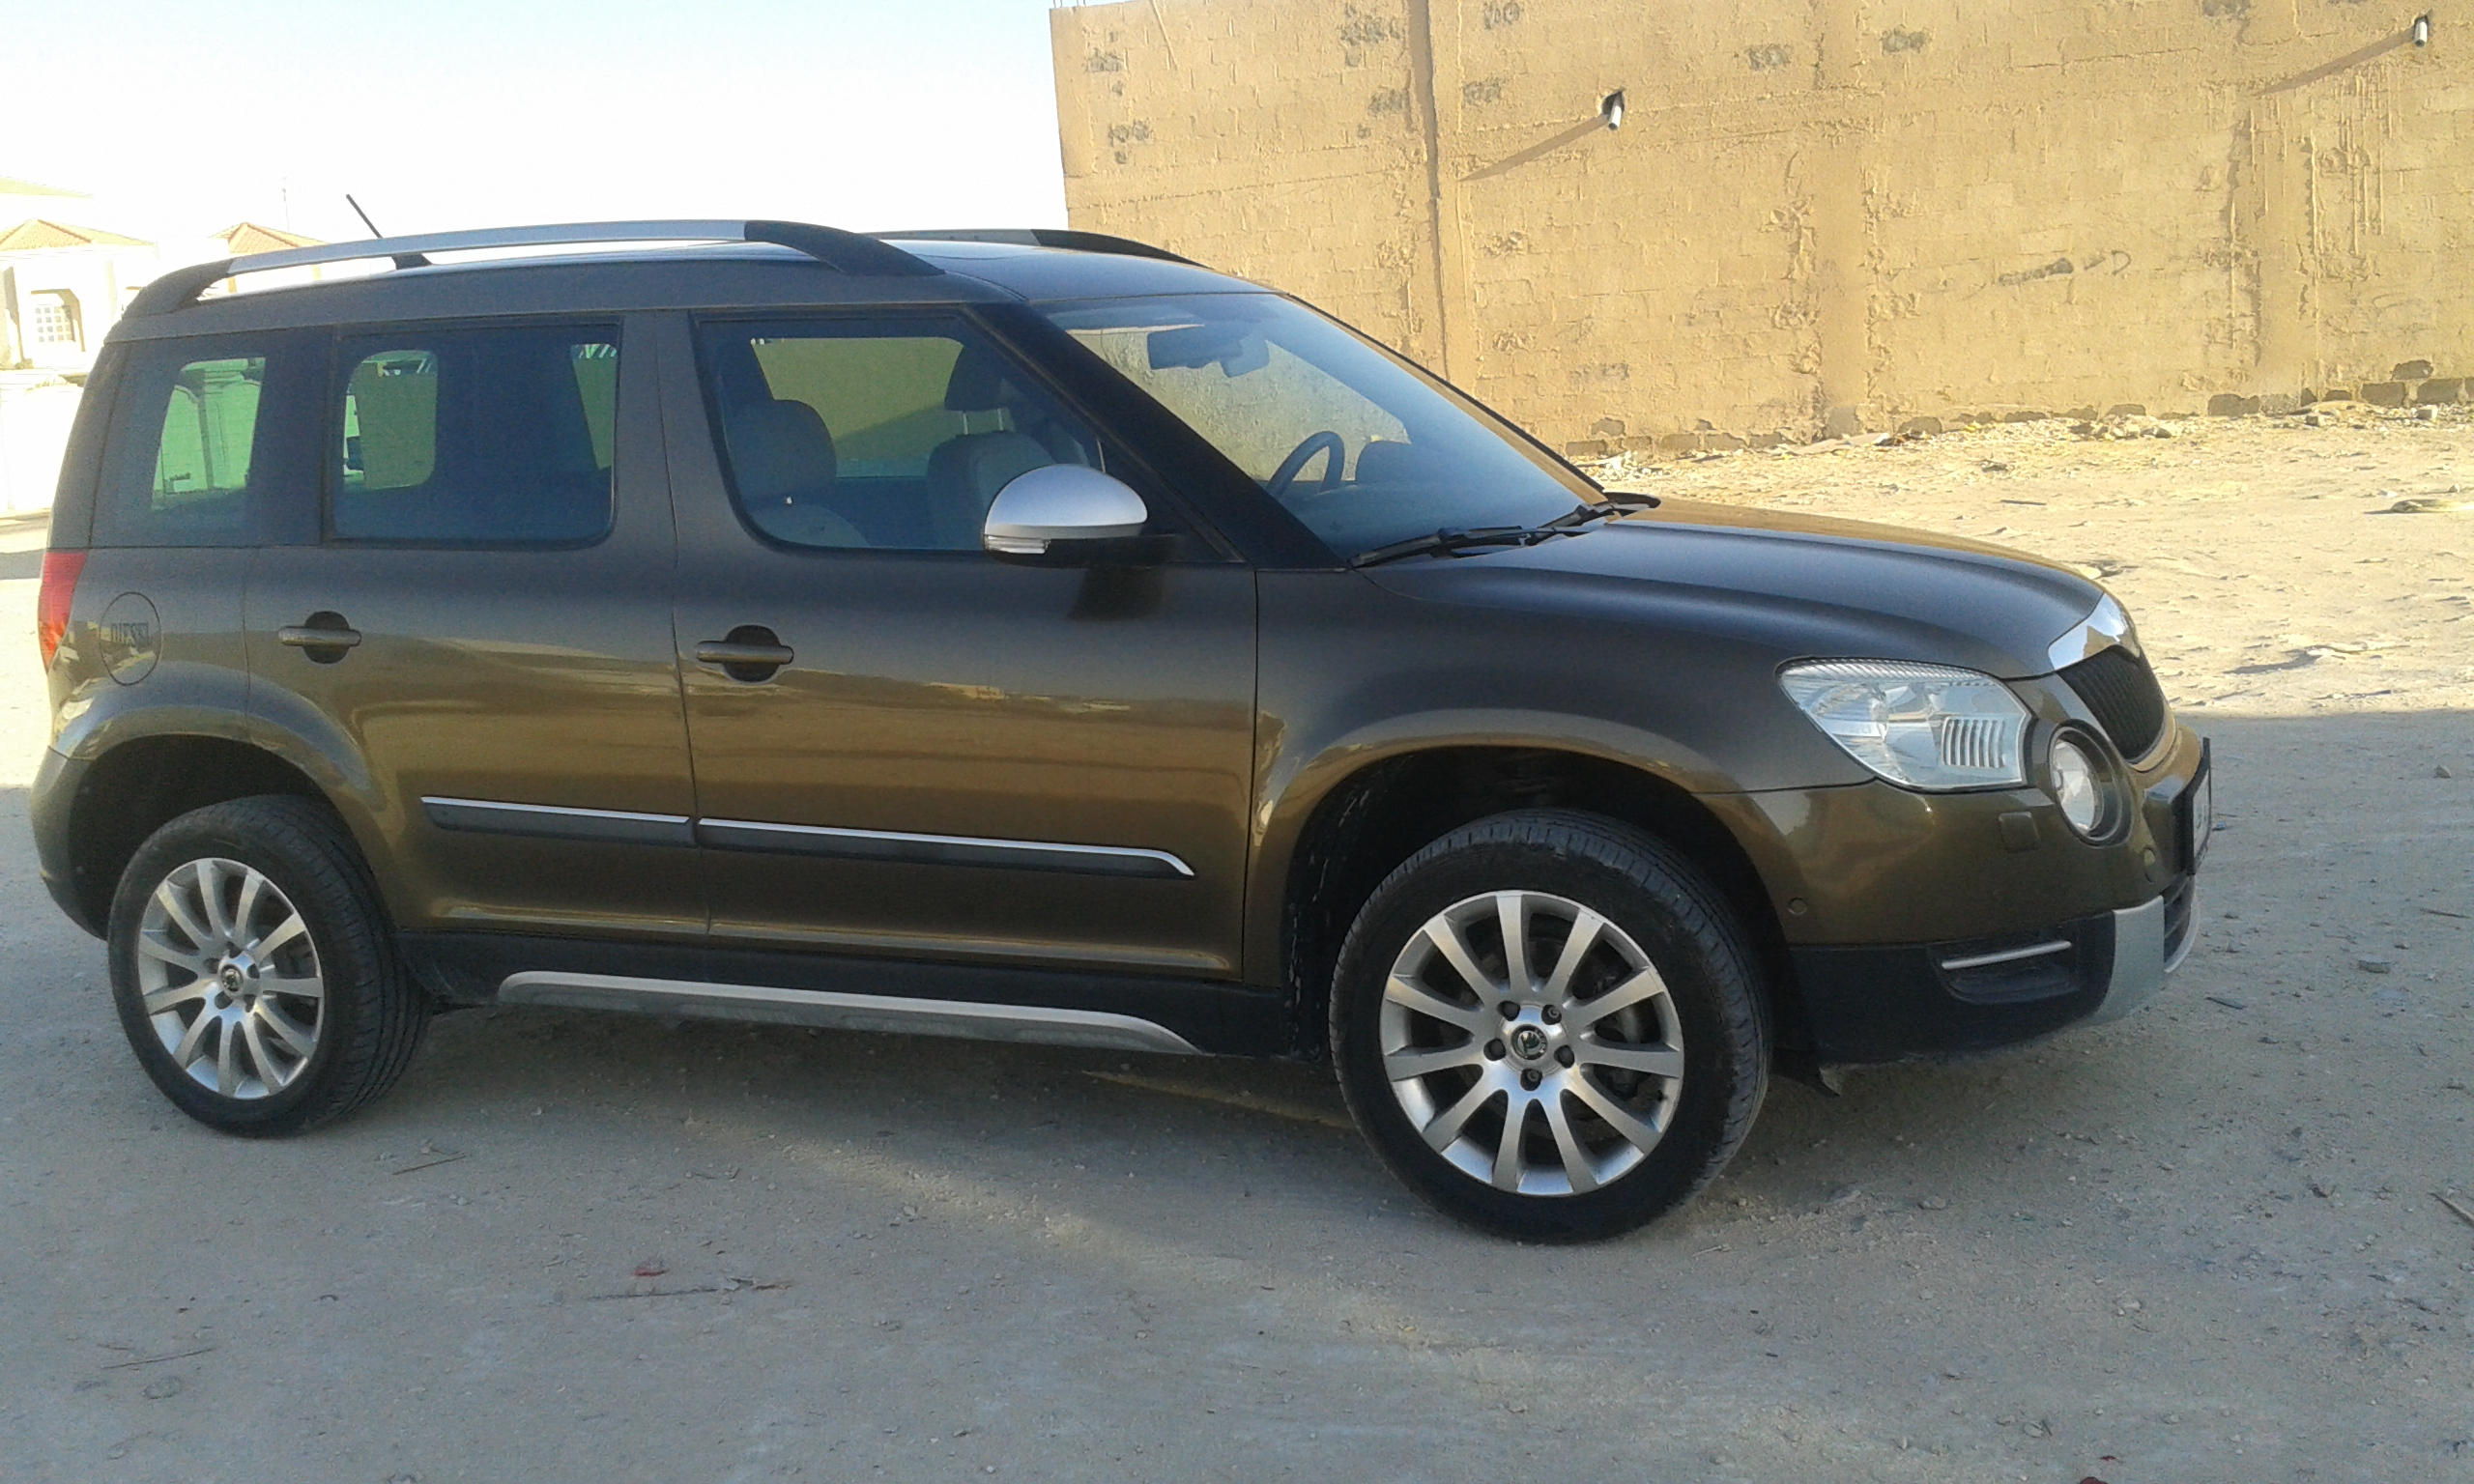 skoda yeti 4x4 model 2011 for sale qatar living. Black Bedroom Furniture Sets. Home Design Ideas